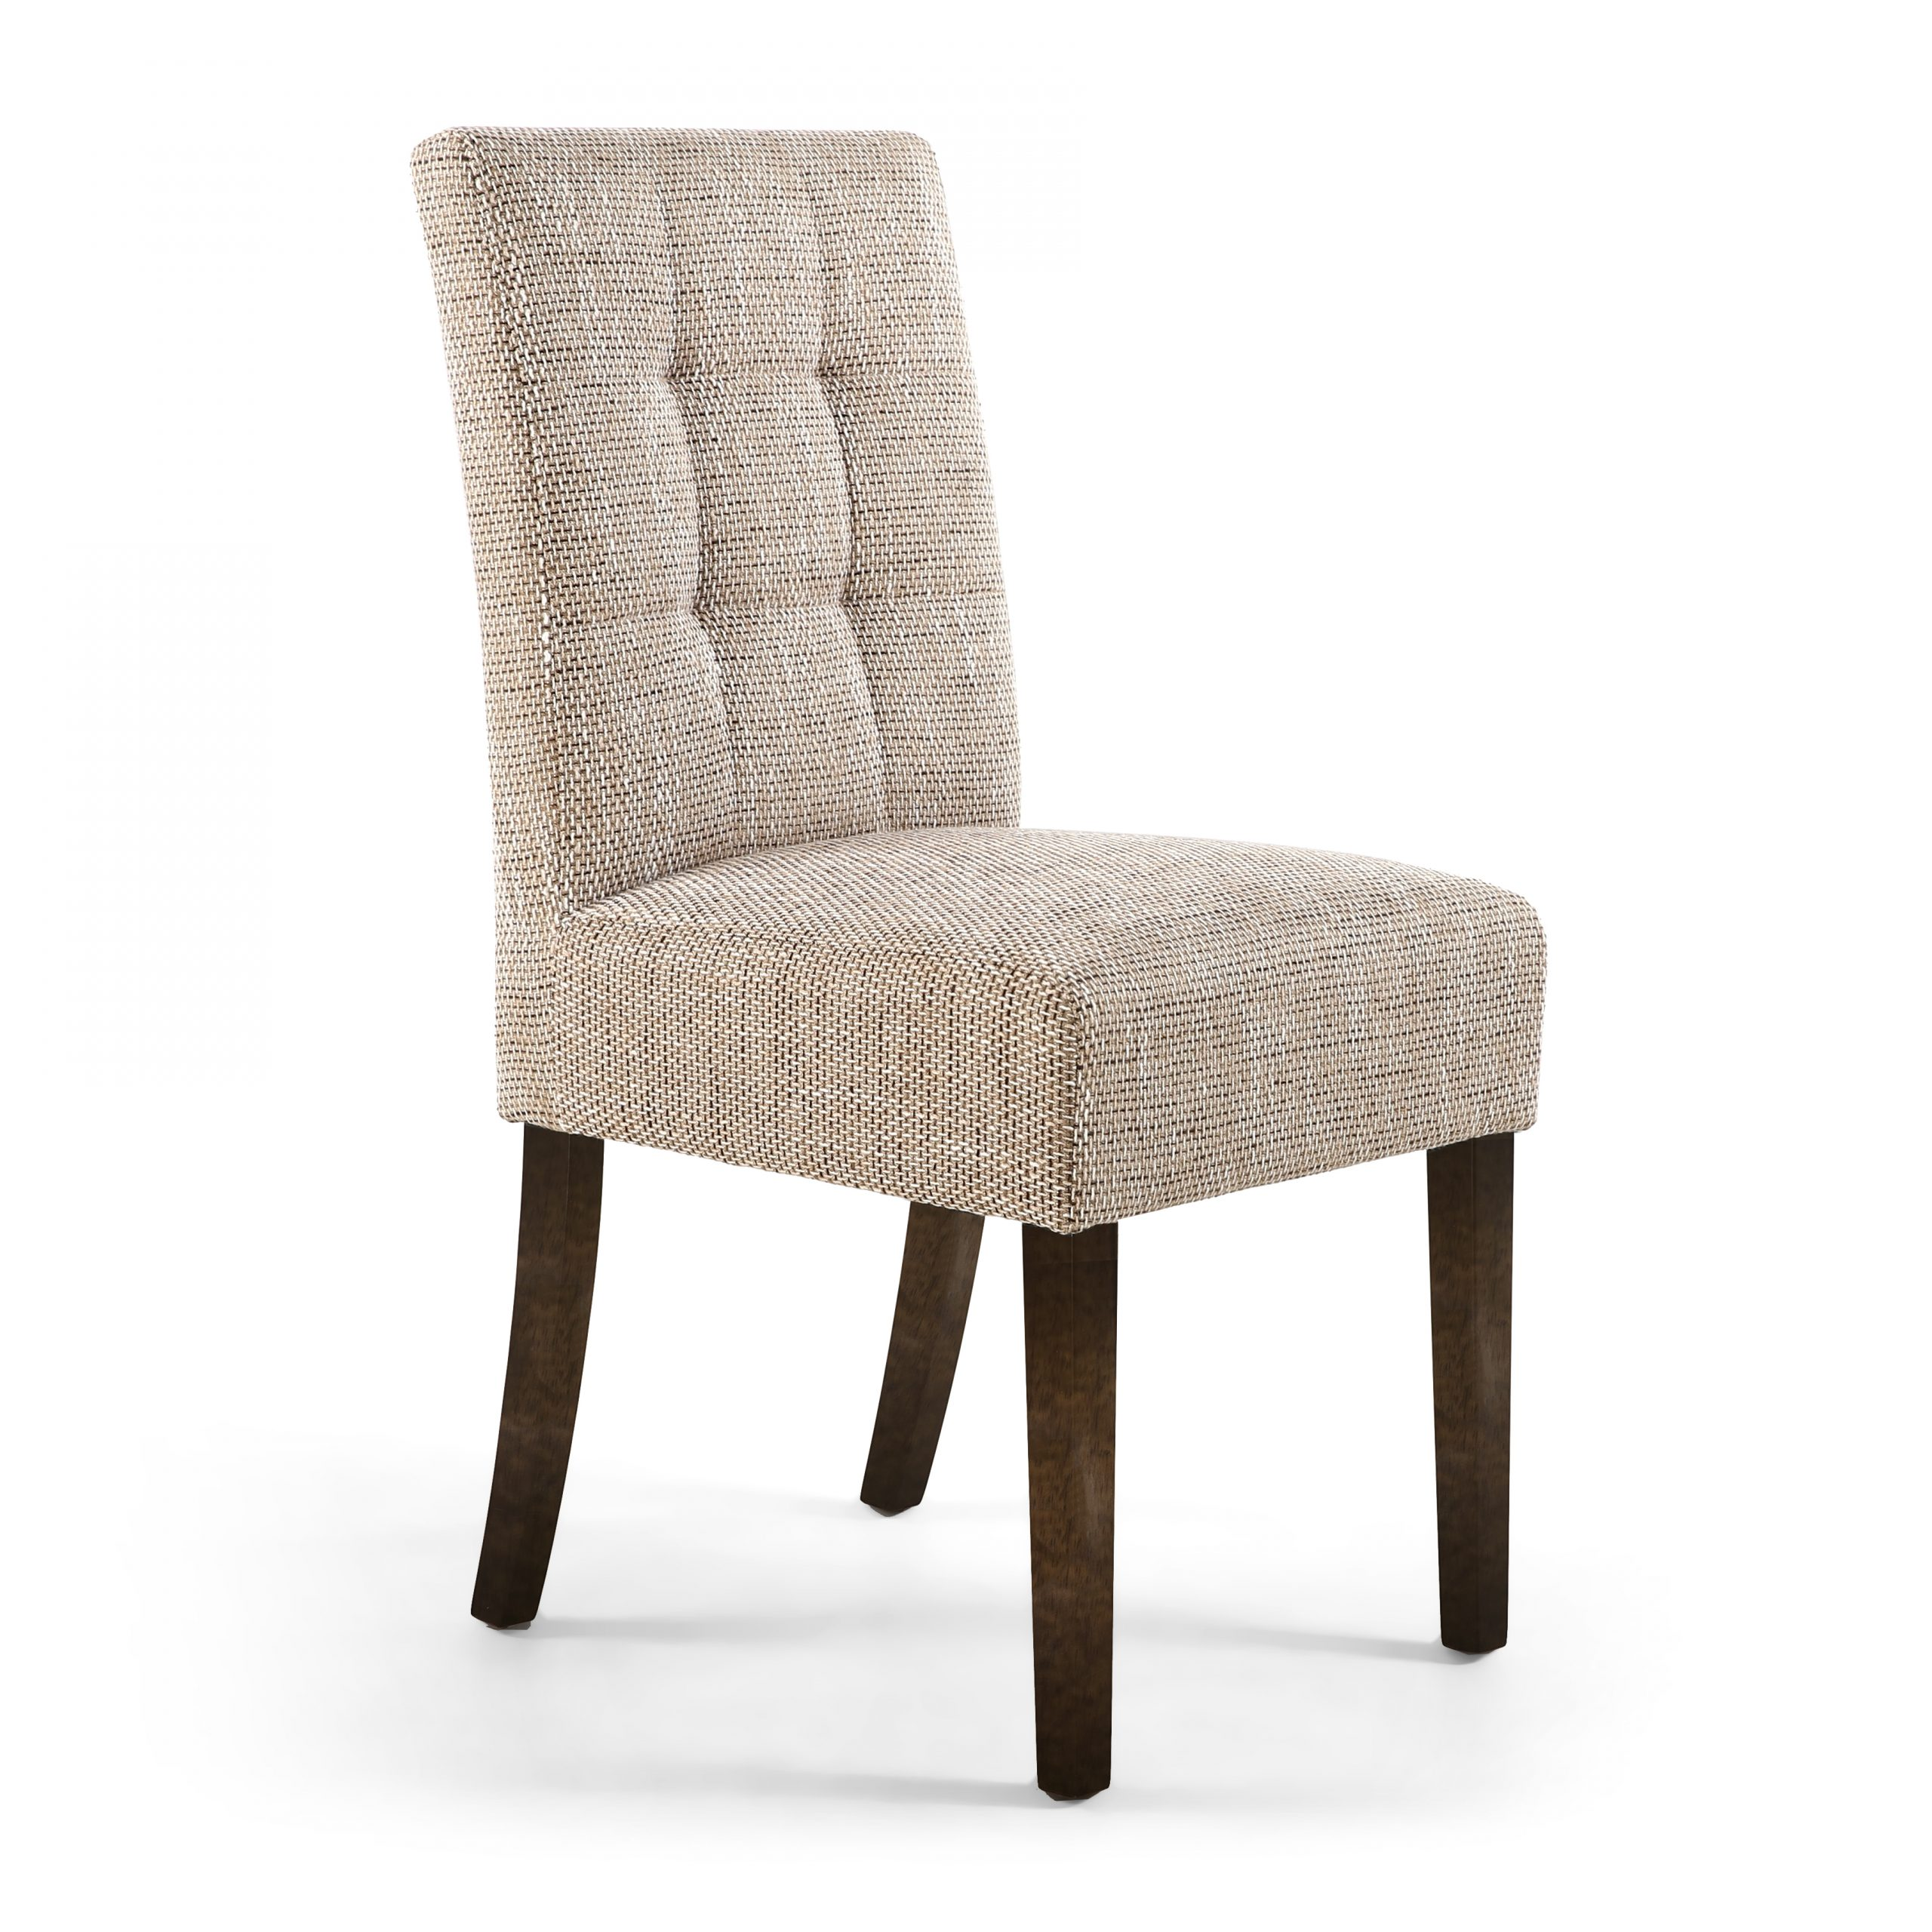 Abby Tweed dining chair with Walnut legs